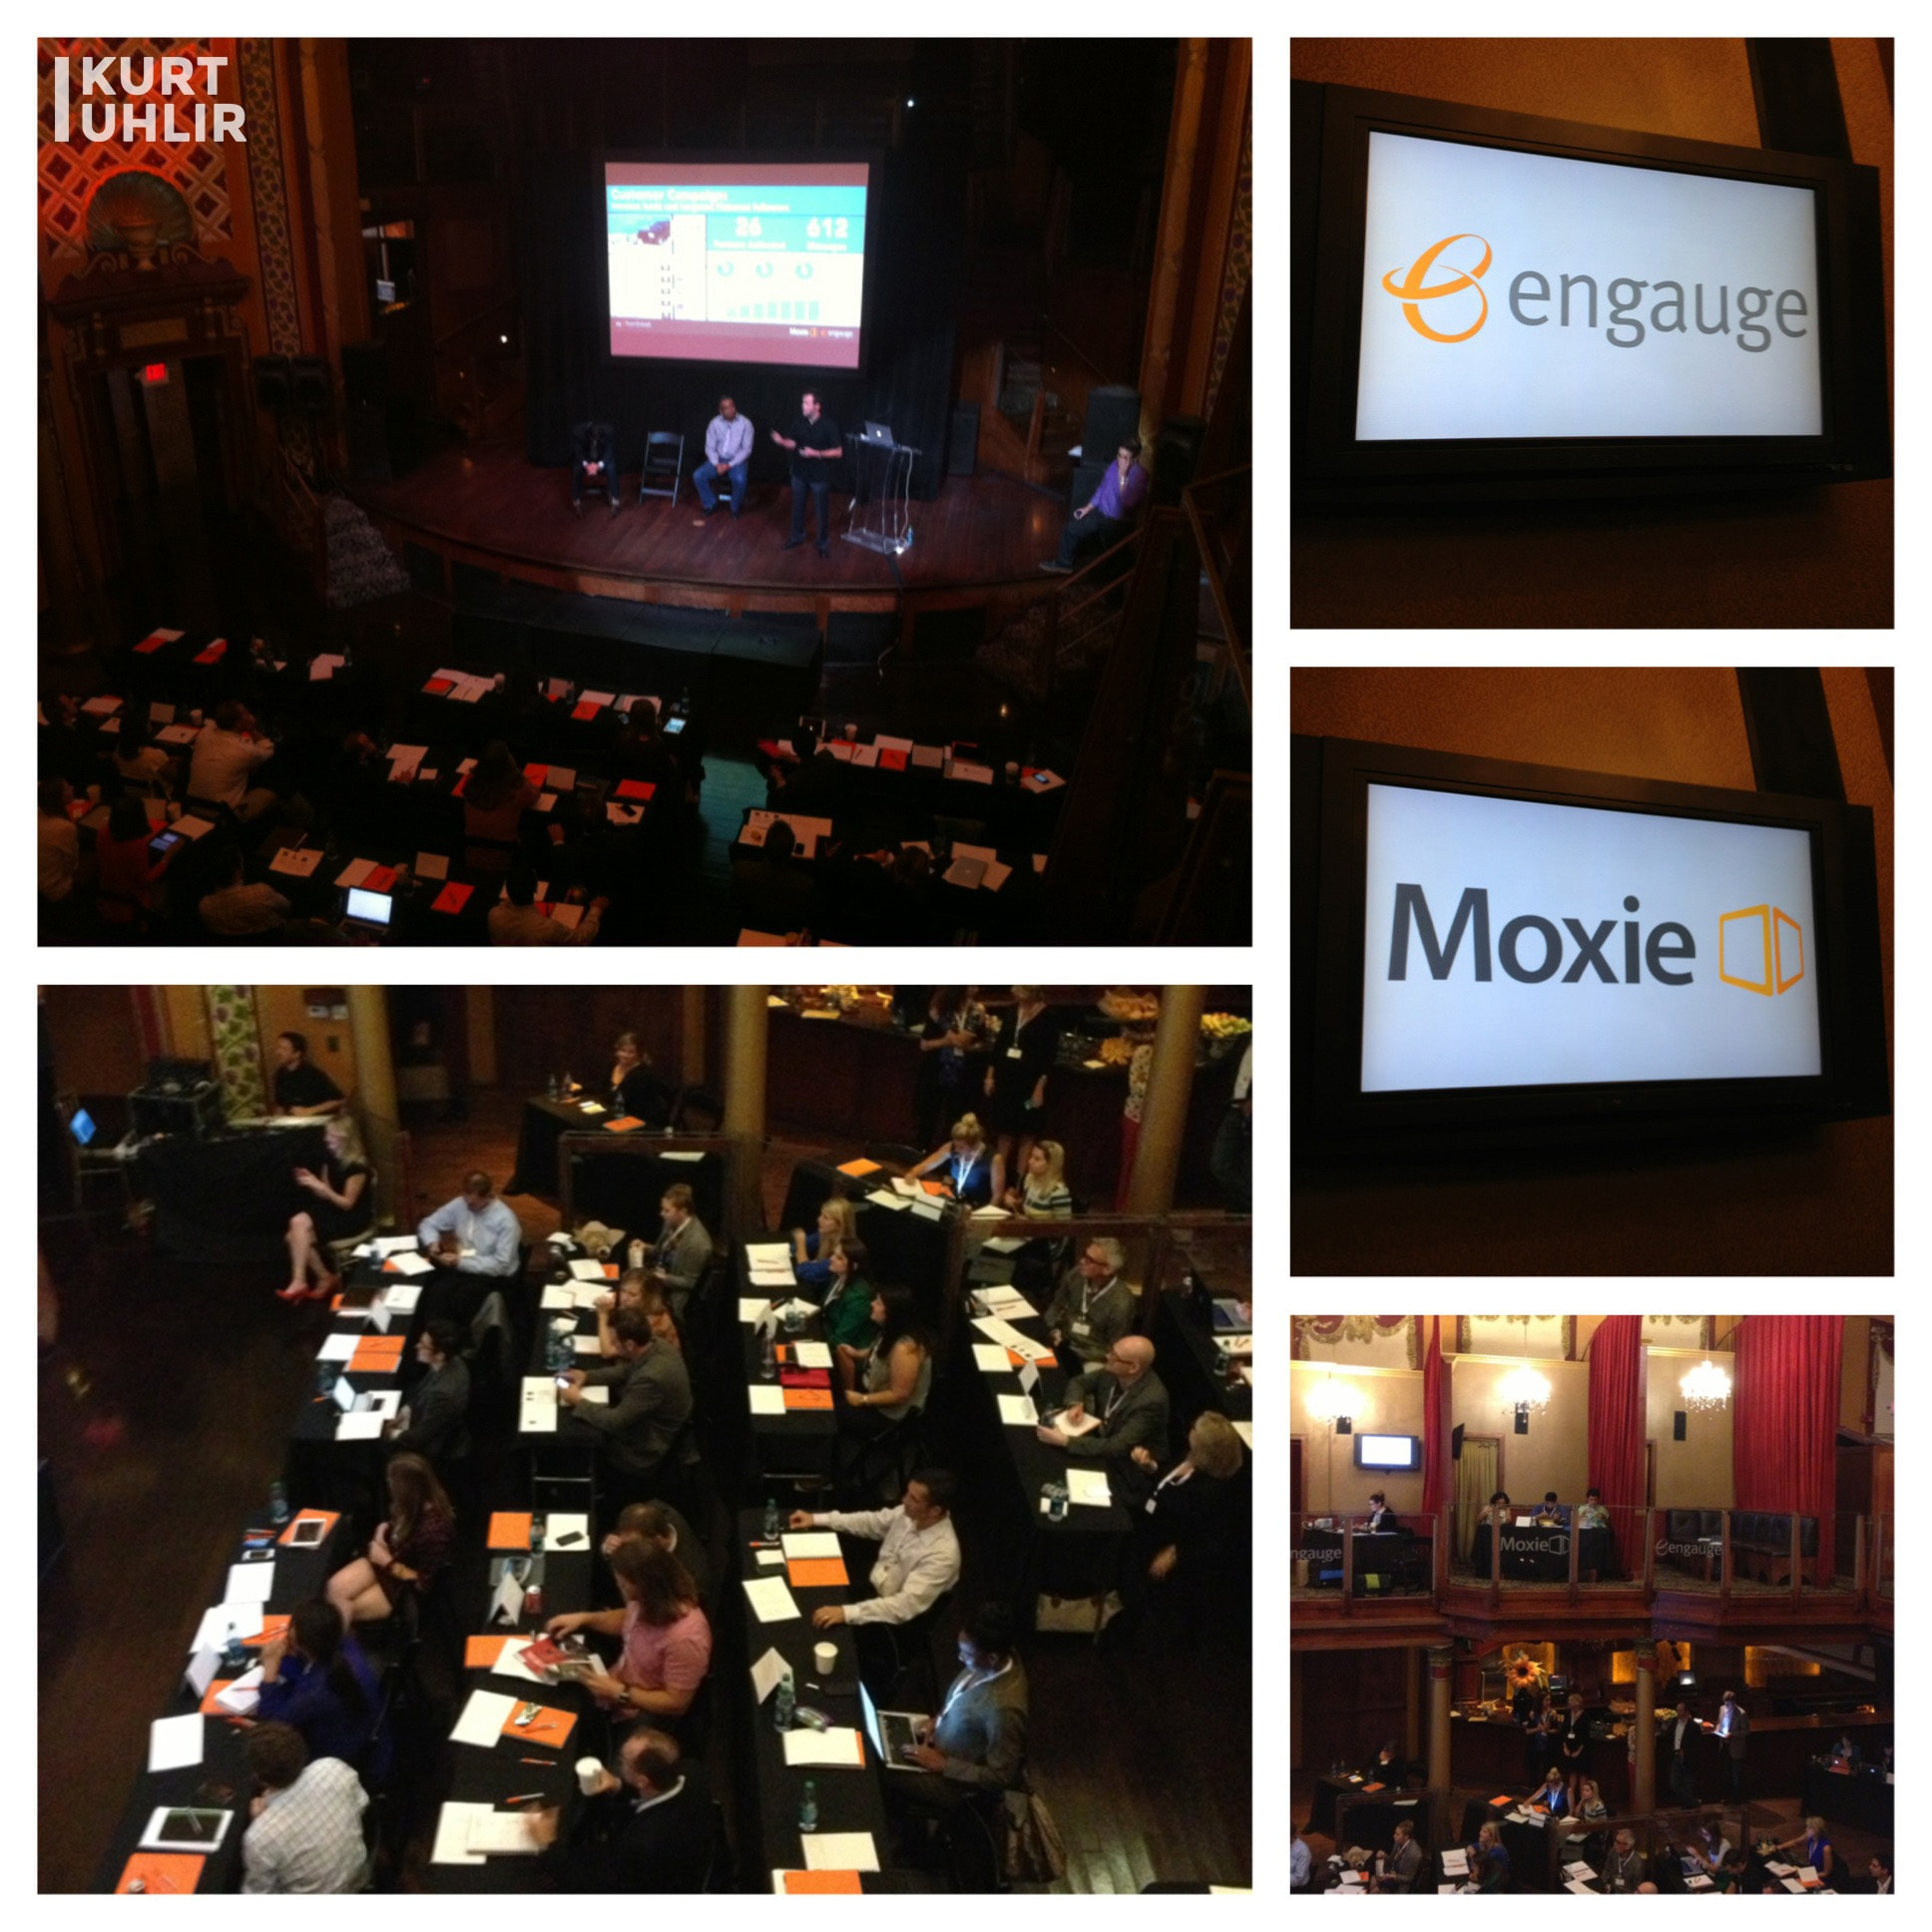 Kurt Uhlir presenting at Moxie Engauge DIG Day 2013 on Influencer Marketing